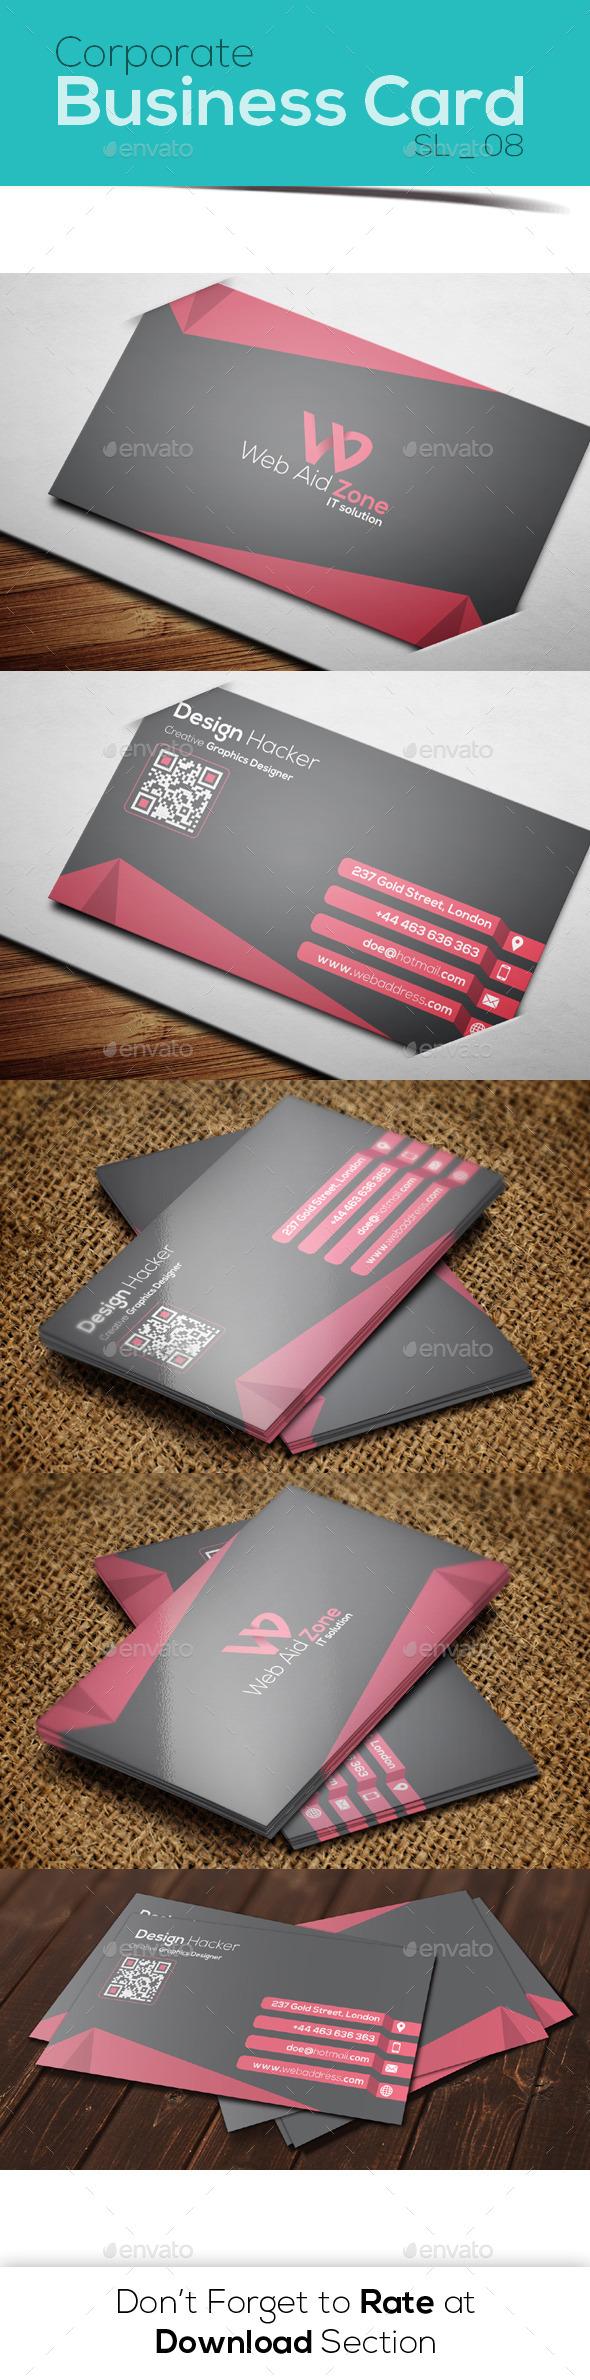 GraphicRiver Corporate Business Card 08 8952763